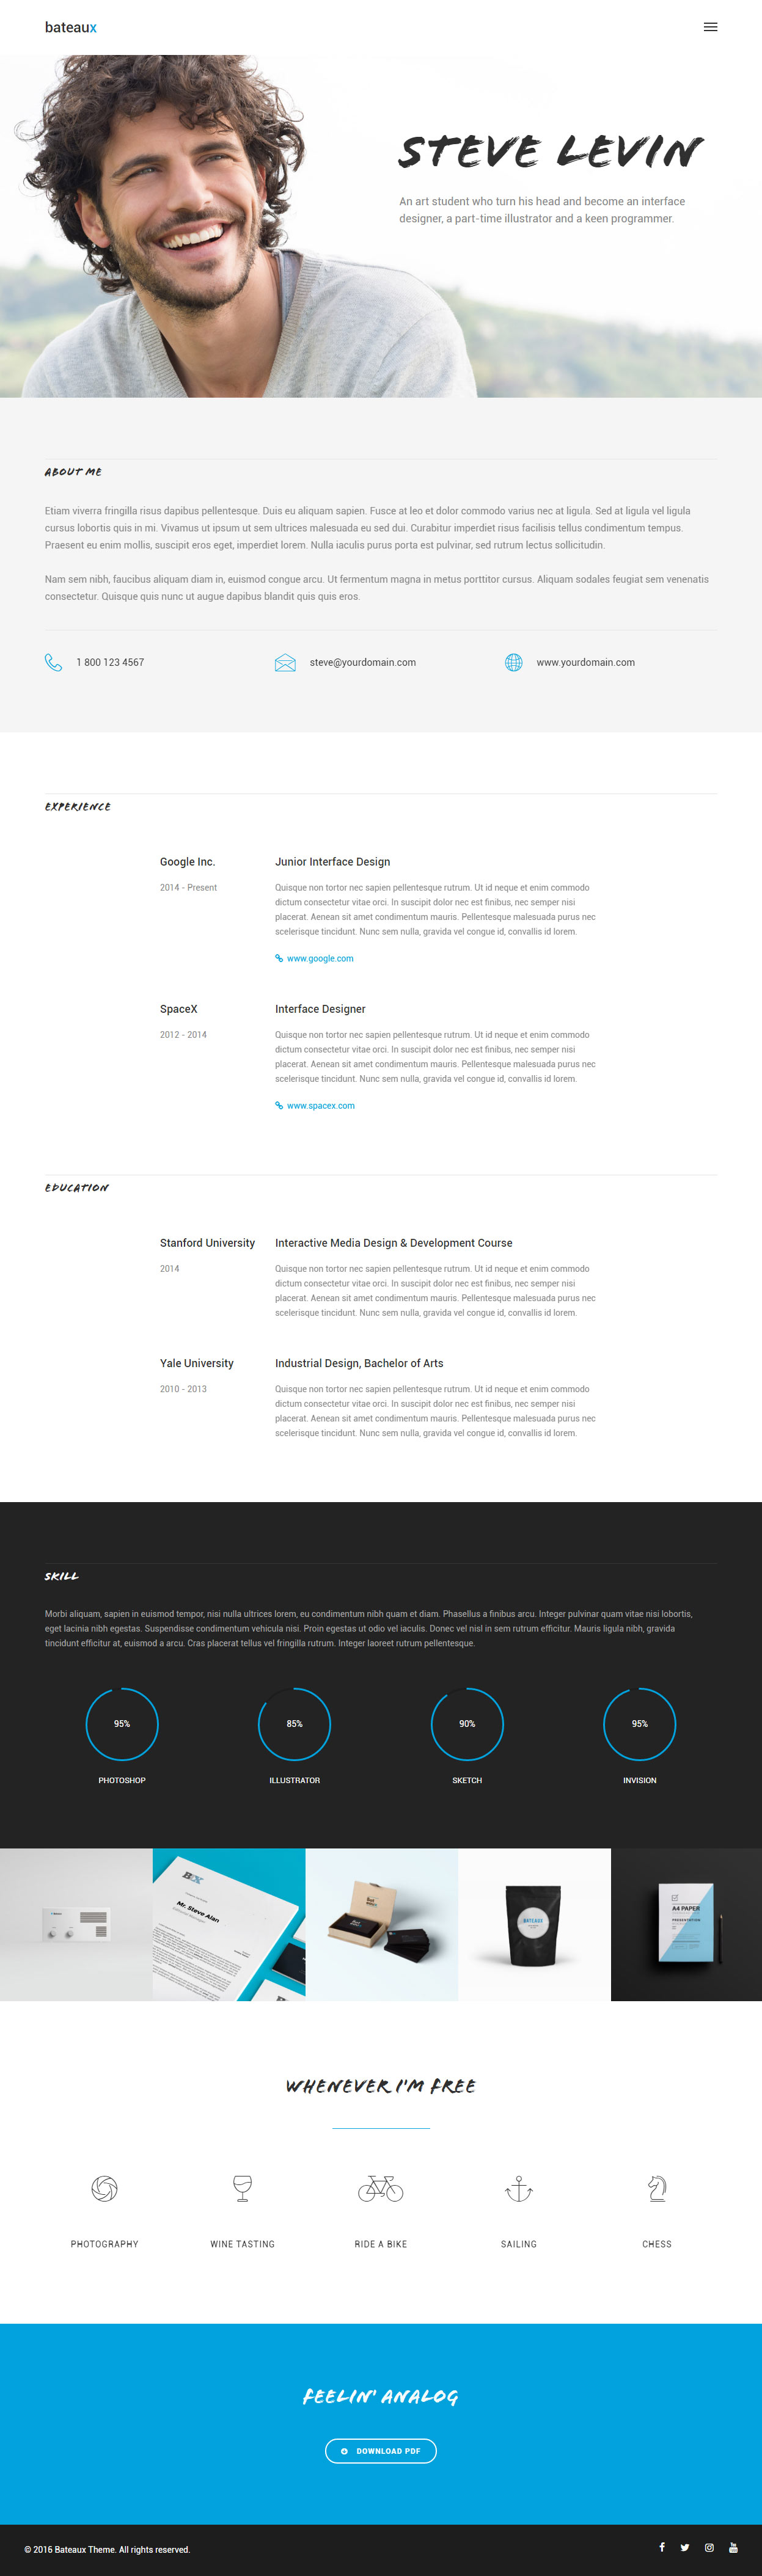 Bateaux WordPress Resume Theme  Wordpress Resume Theme